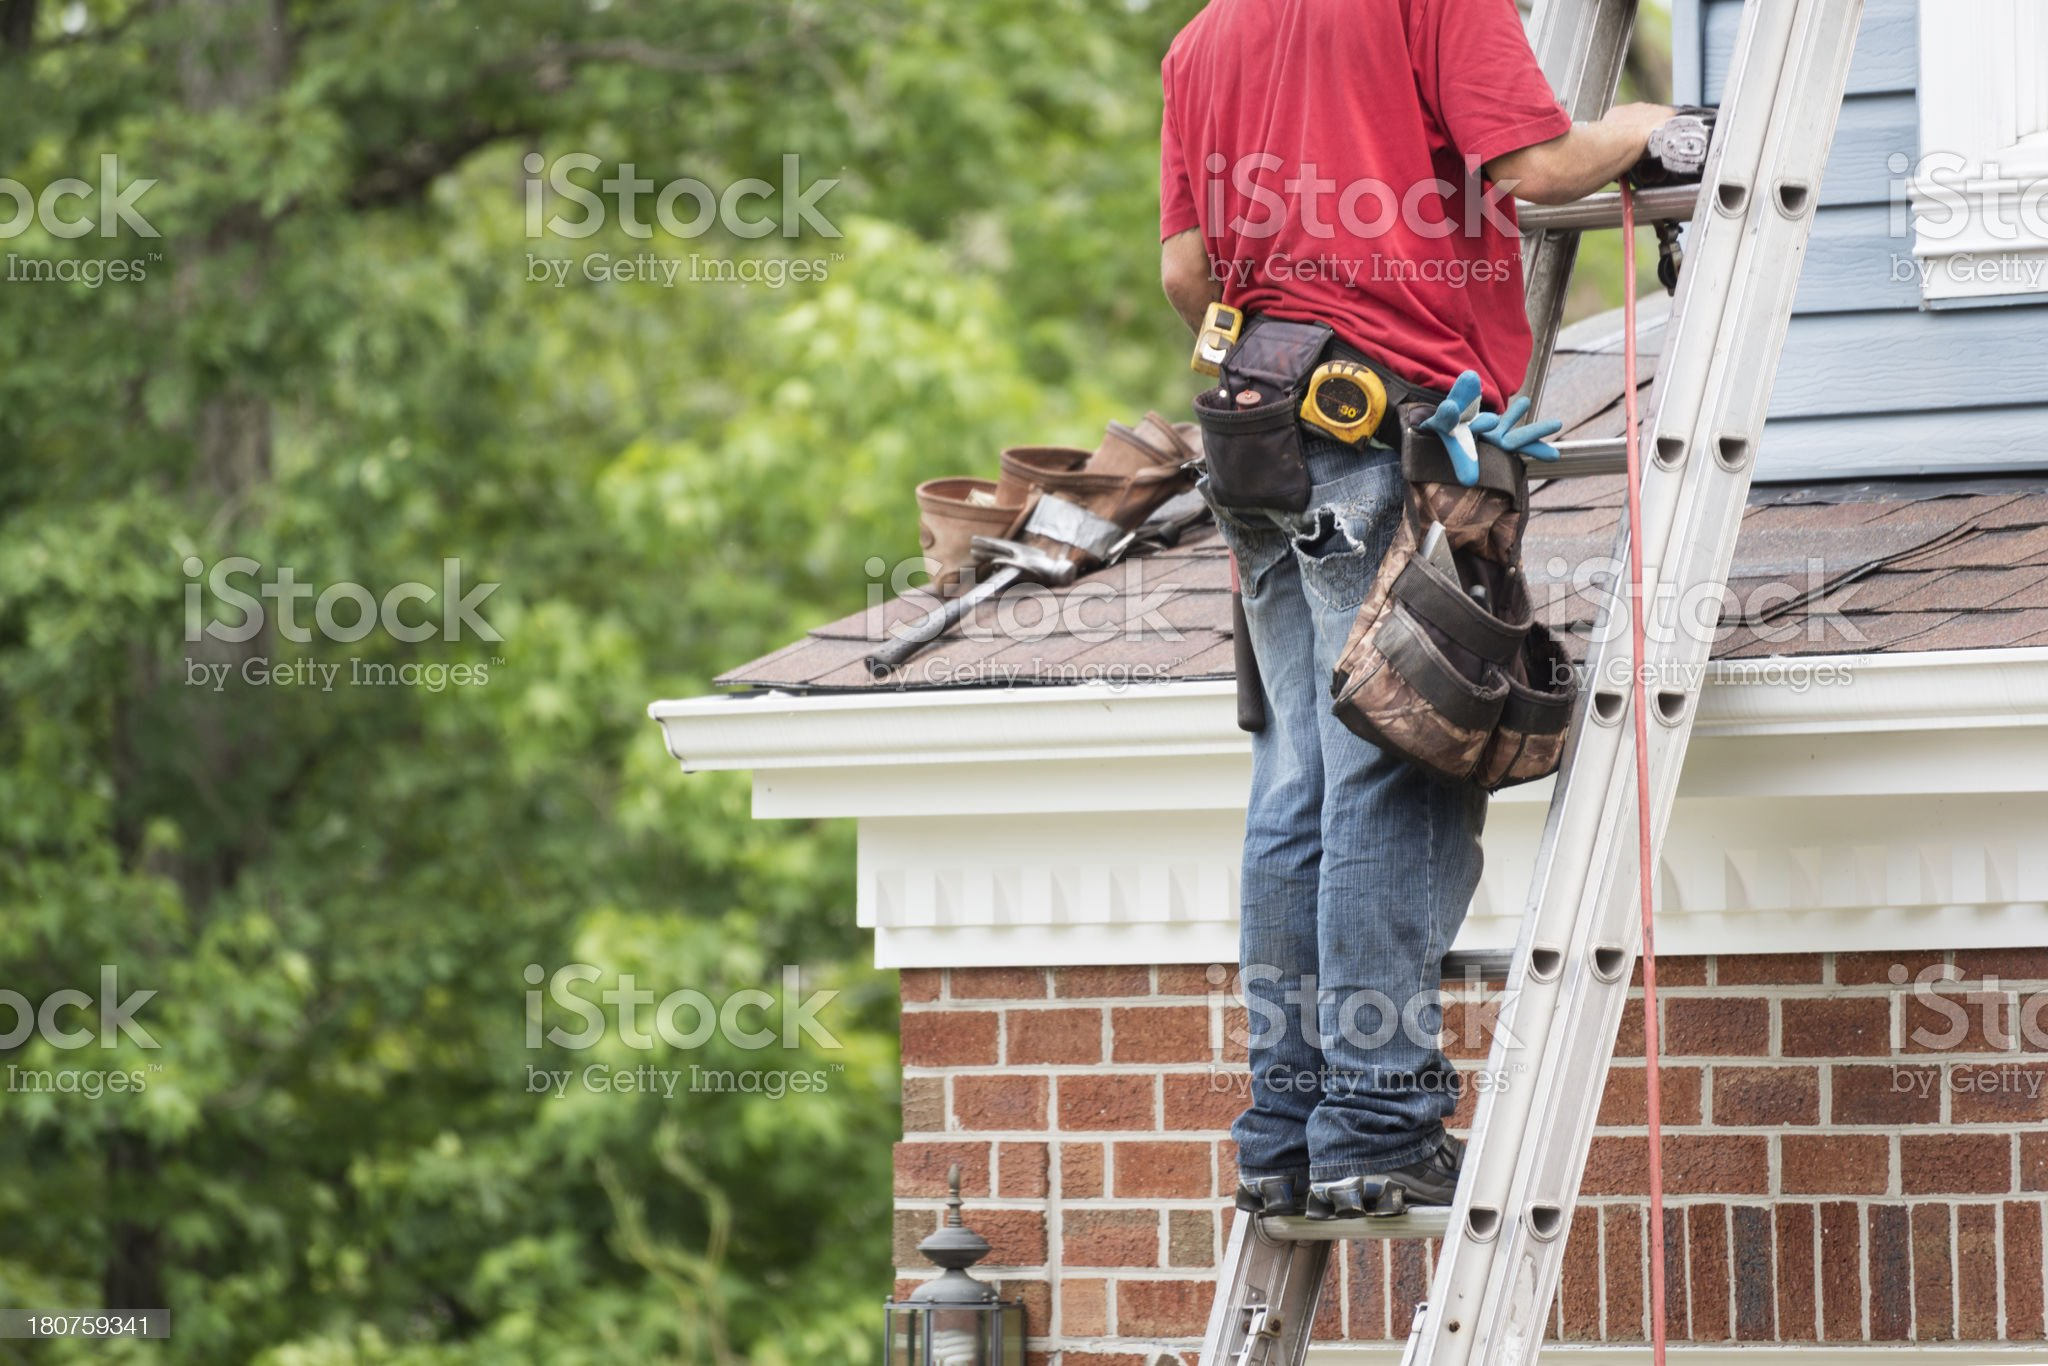 Roofer on a Ladder Horizontal with Copy Space royalty-free stock photo